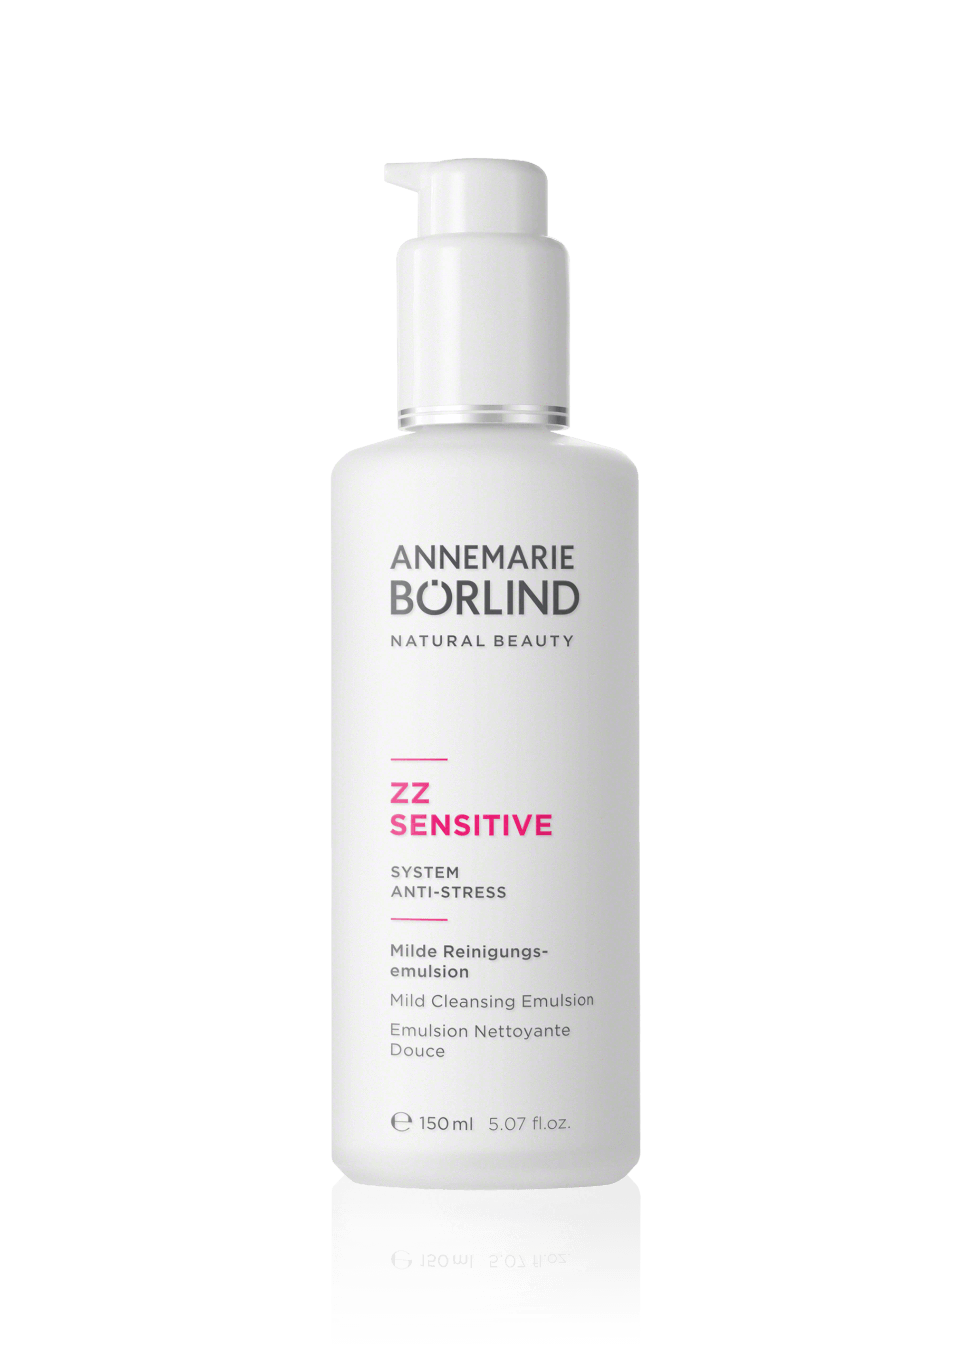 Personal Care - Annemarie Borlind ZZ Sensitive Mild Cleansing Emulsion, 150mL